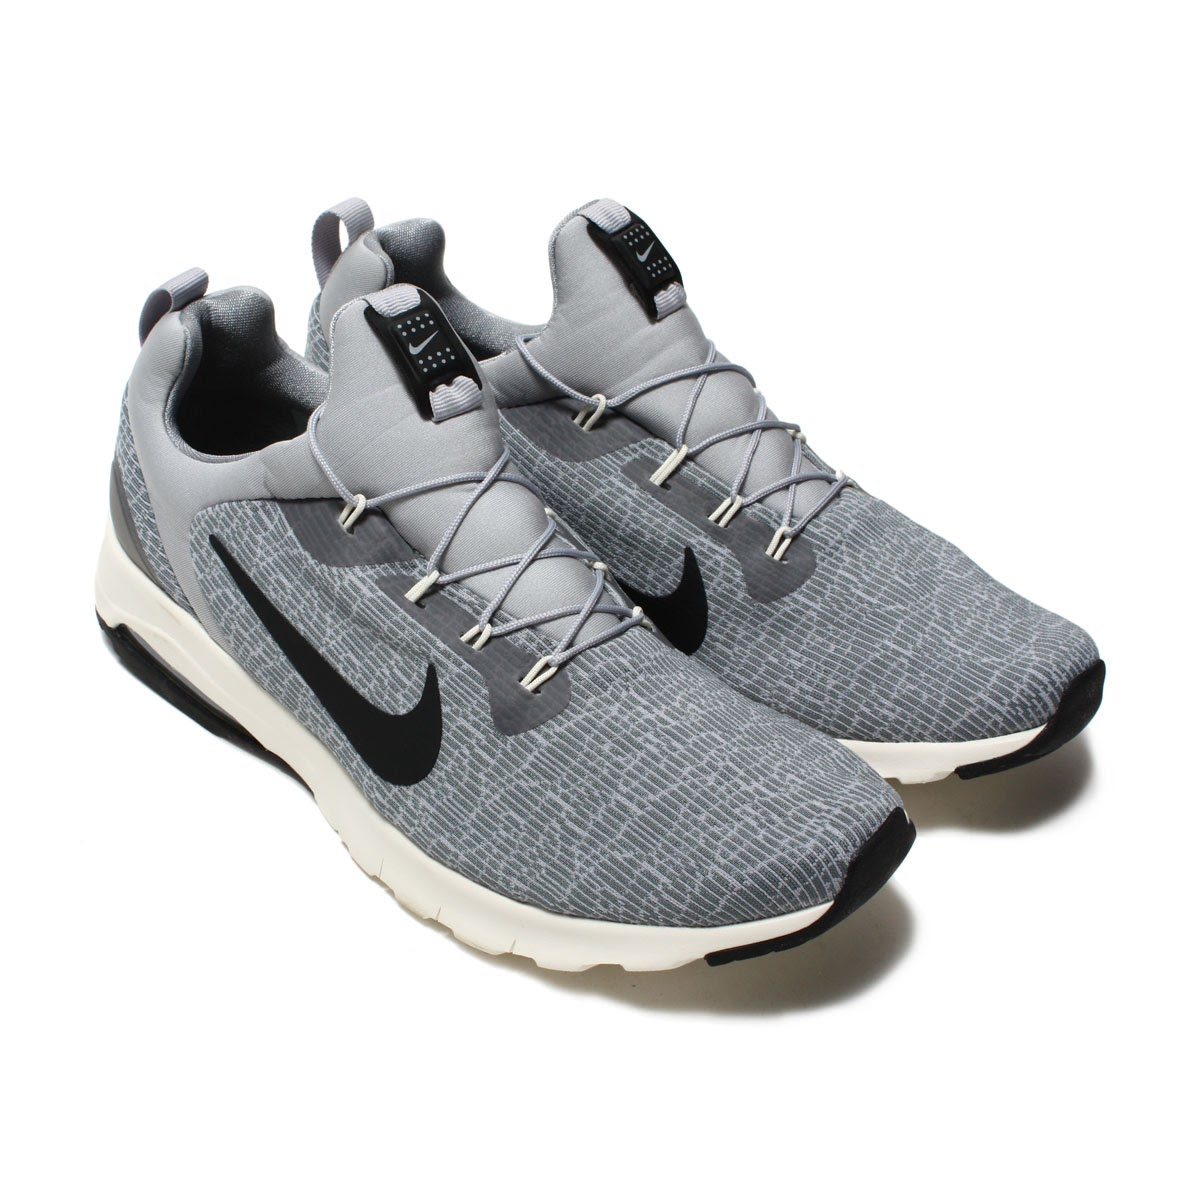 online store 51f81 b358b The AIR MAX shoes which inspire made a retro.